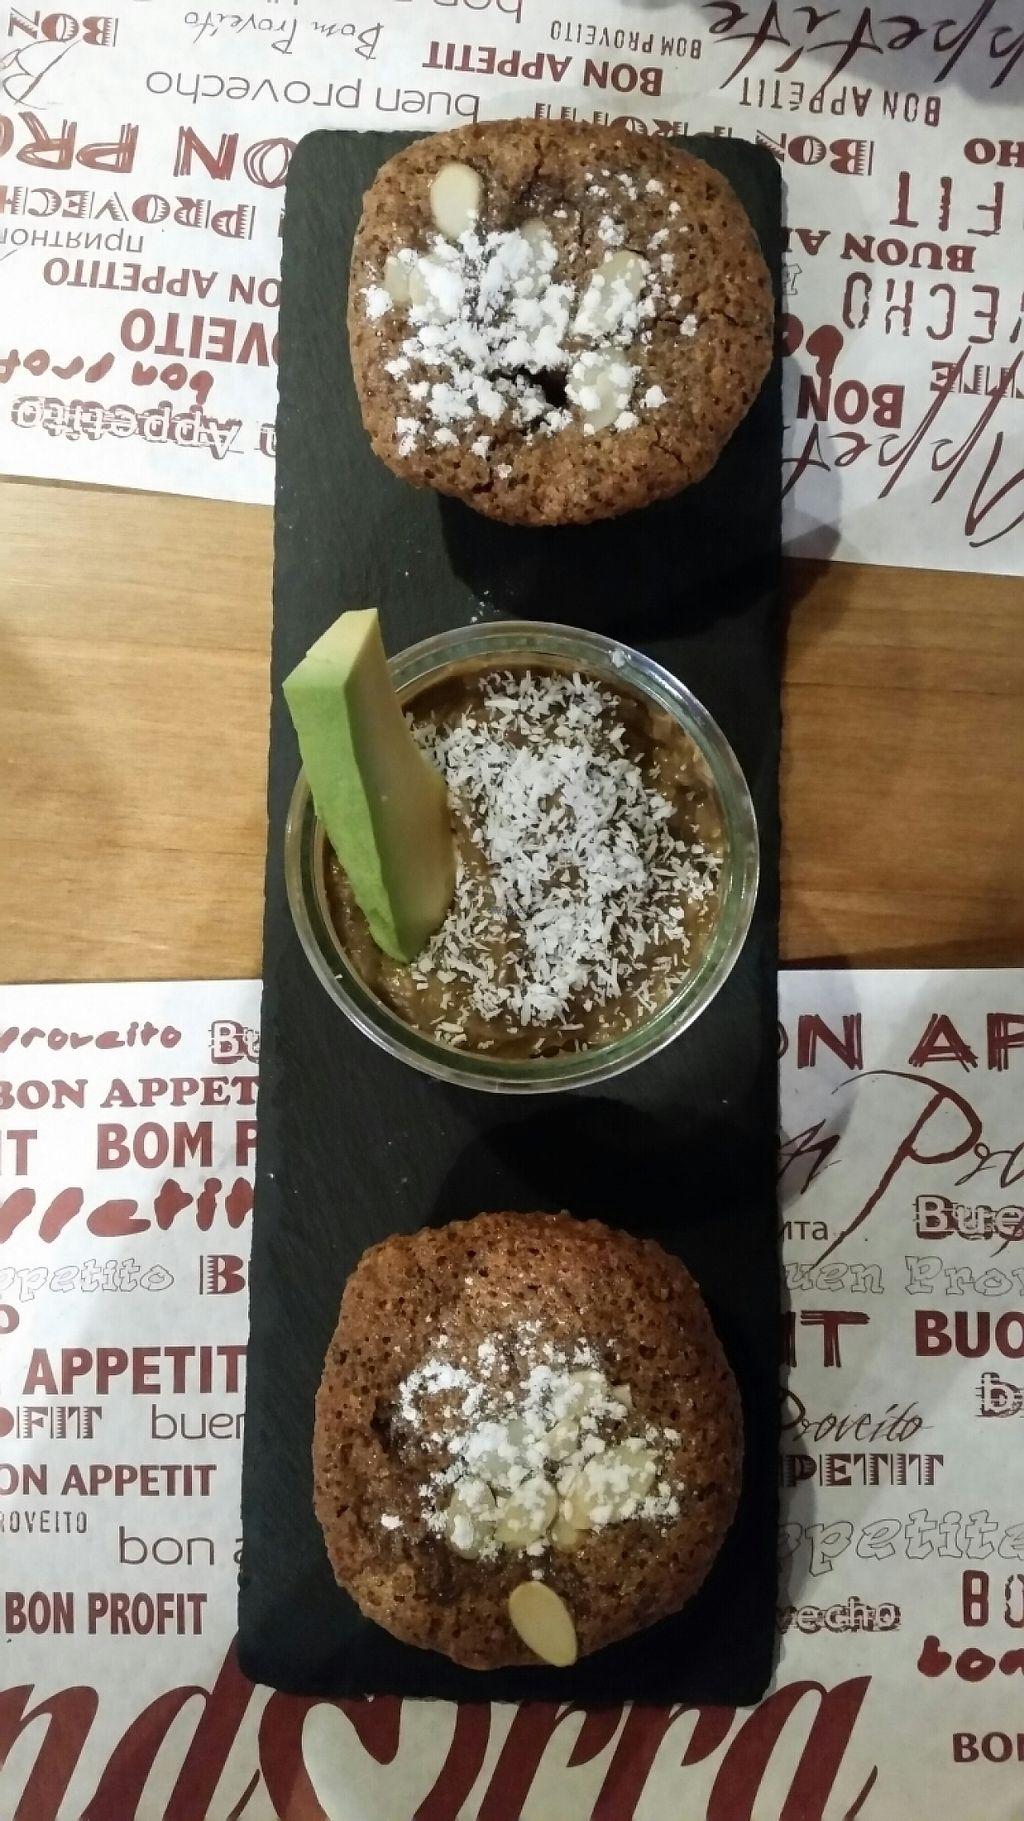 """Photo of Veggie's World  by <a href=""""/members/profile/stachelbeere"""">stachelbeere</a> <br/>gluten free vegan cupcakes and avocado mousse <br/> May 23, 2017  - <a href='/contact/abuse/image/82446/261786'>Report</a>"""